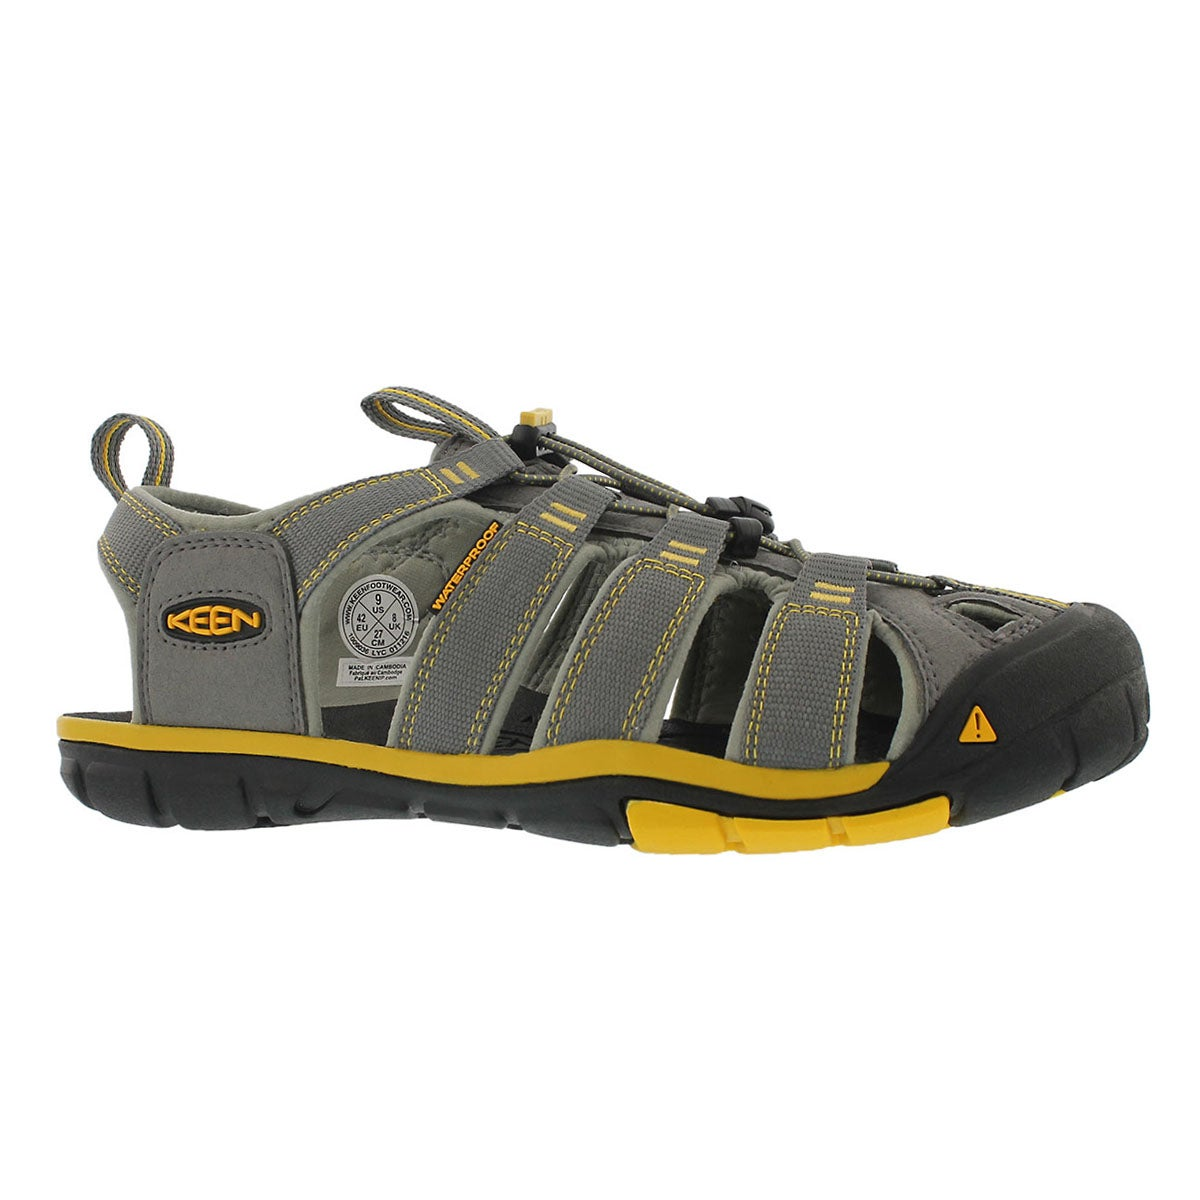 Men's CLEARWATER CNX gry/ylw fisherman sandals